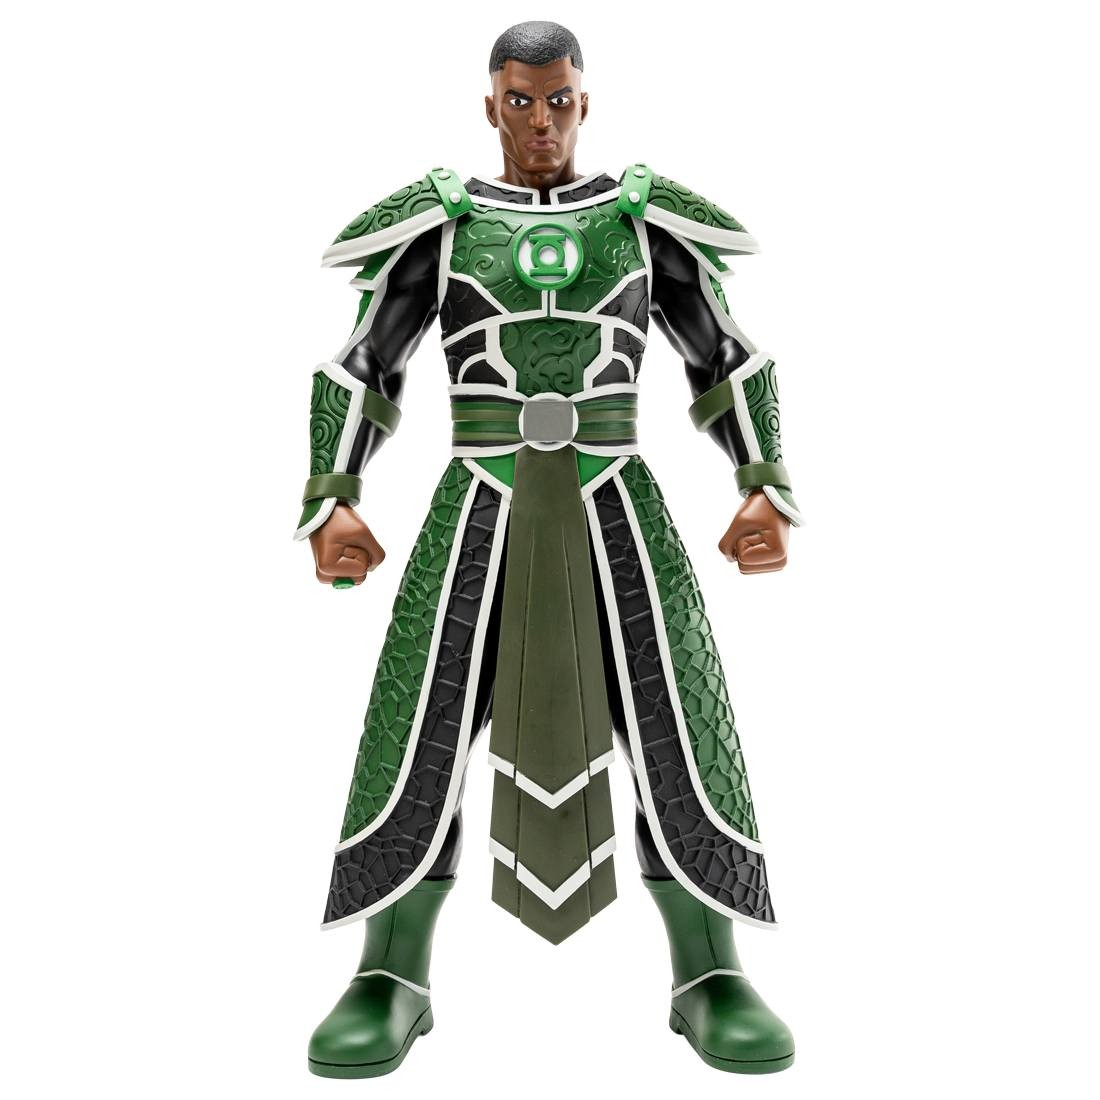 MINDstyle x DC x Imperial Palace 15 Inch Green Lantern Figure (green)